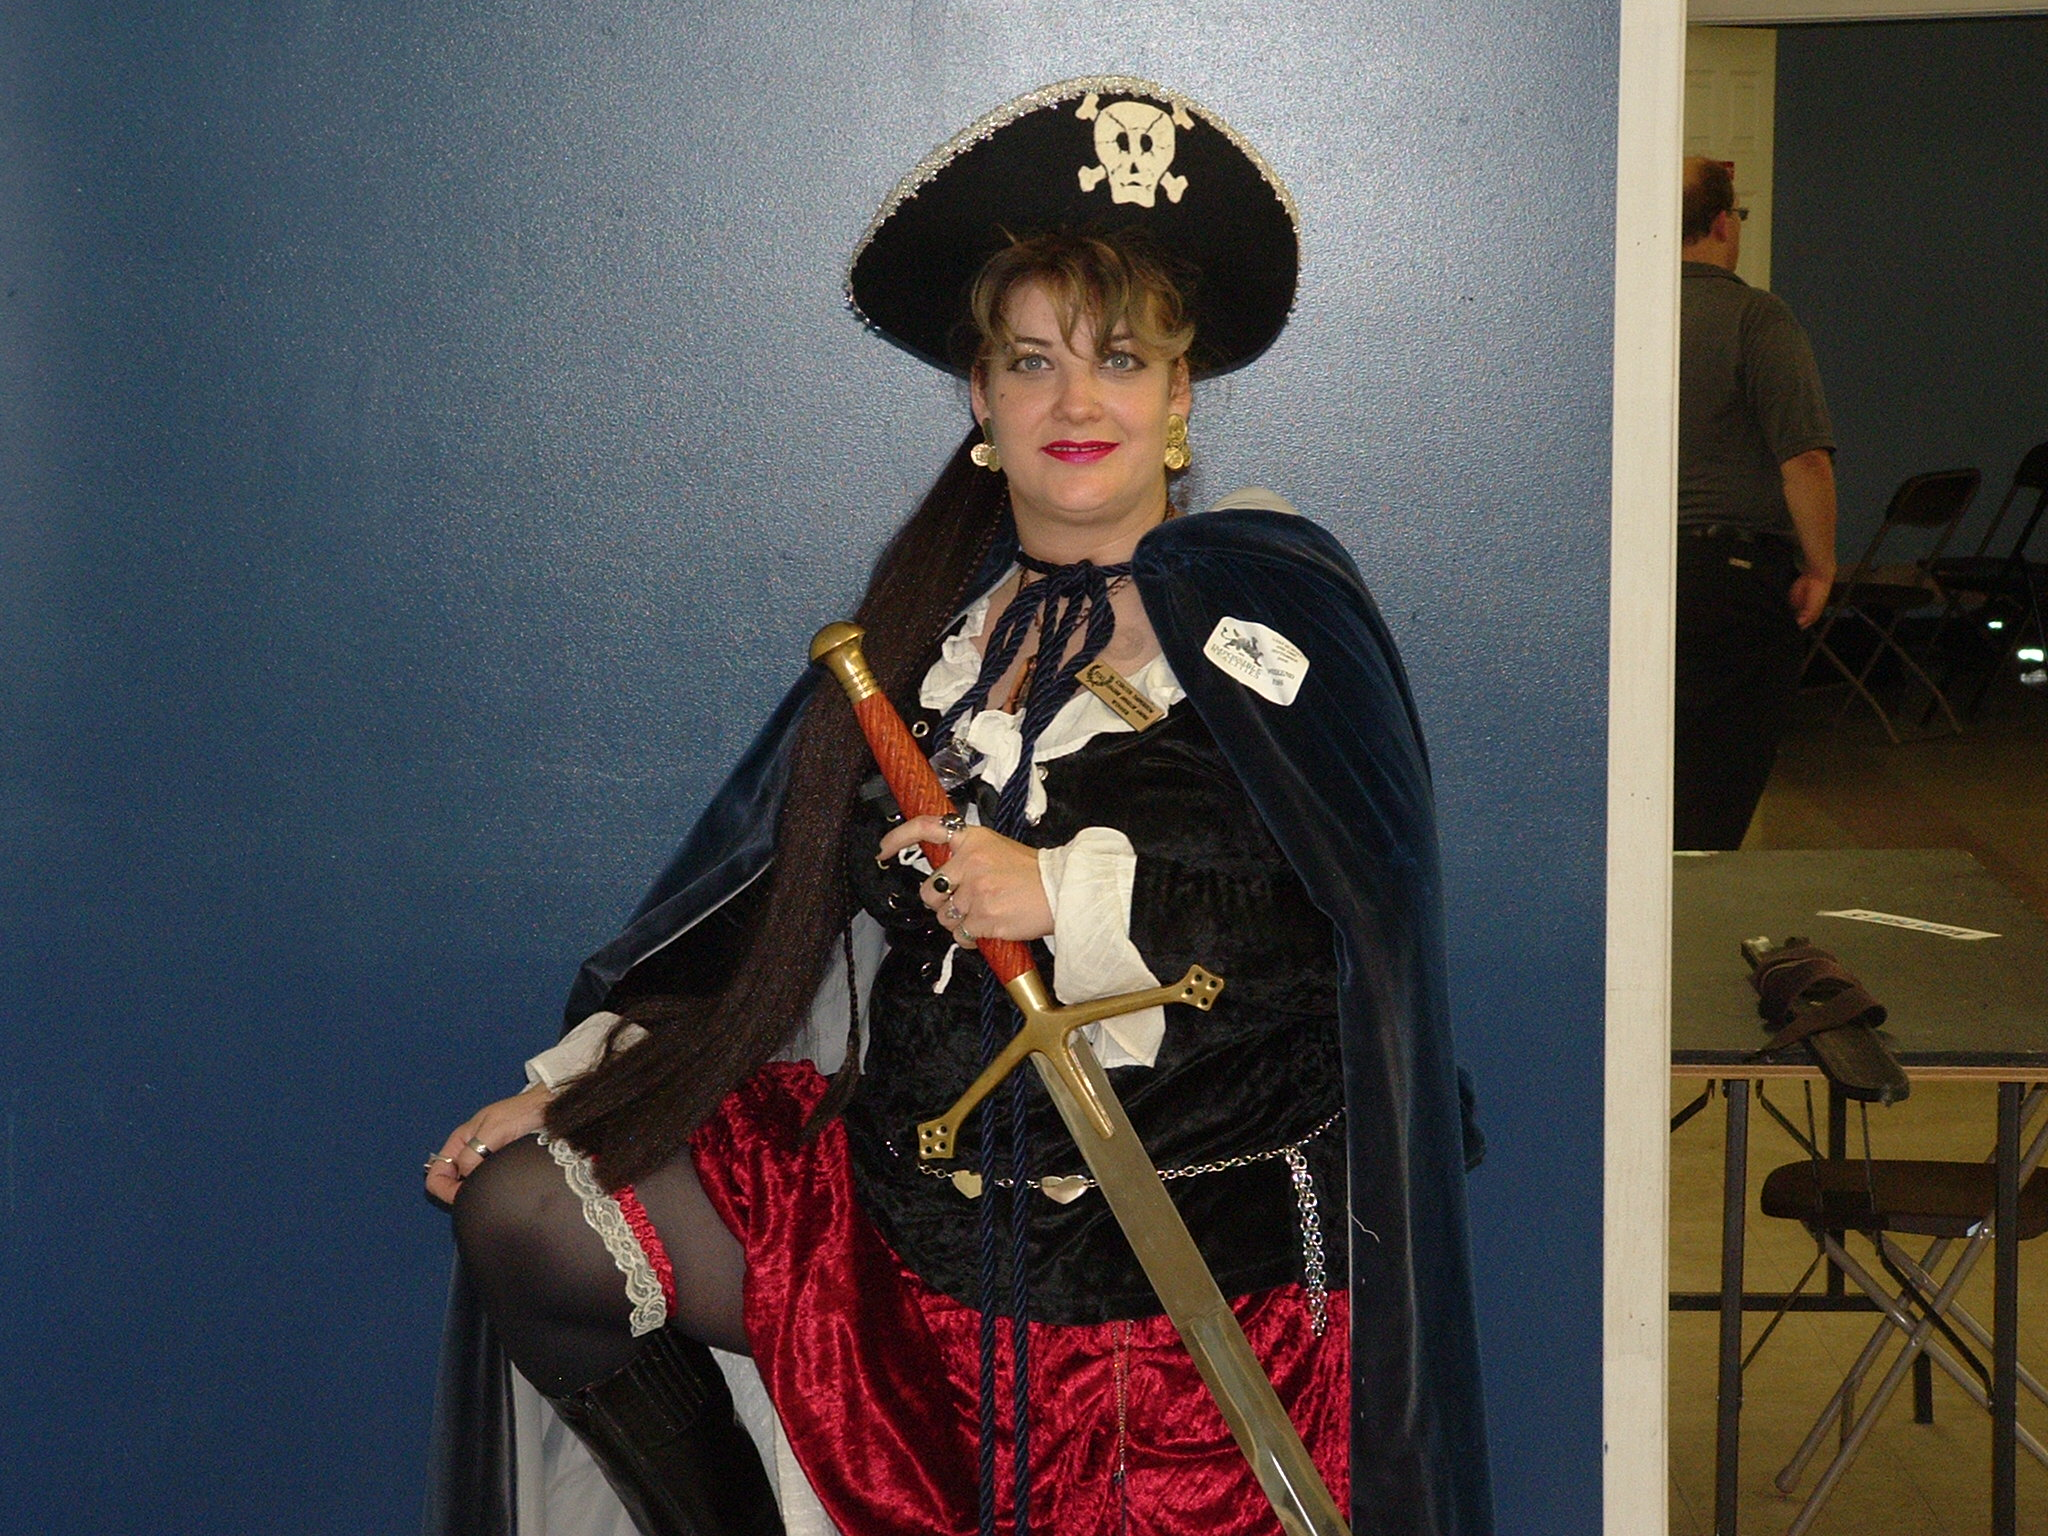 0609 CosPlay - Pirate 04